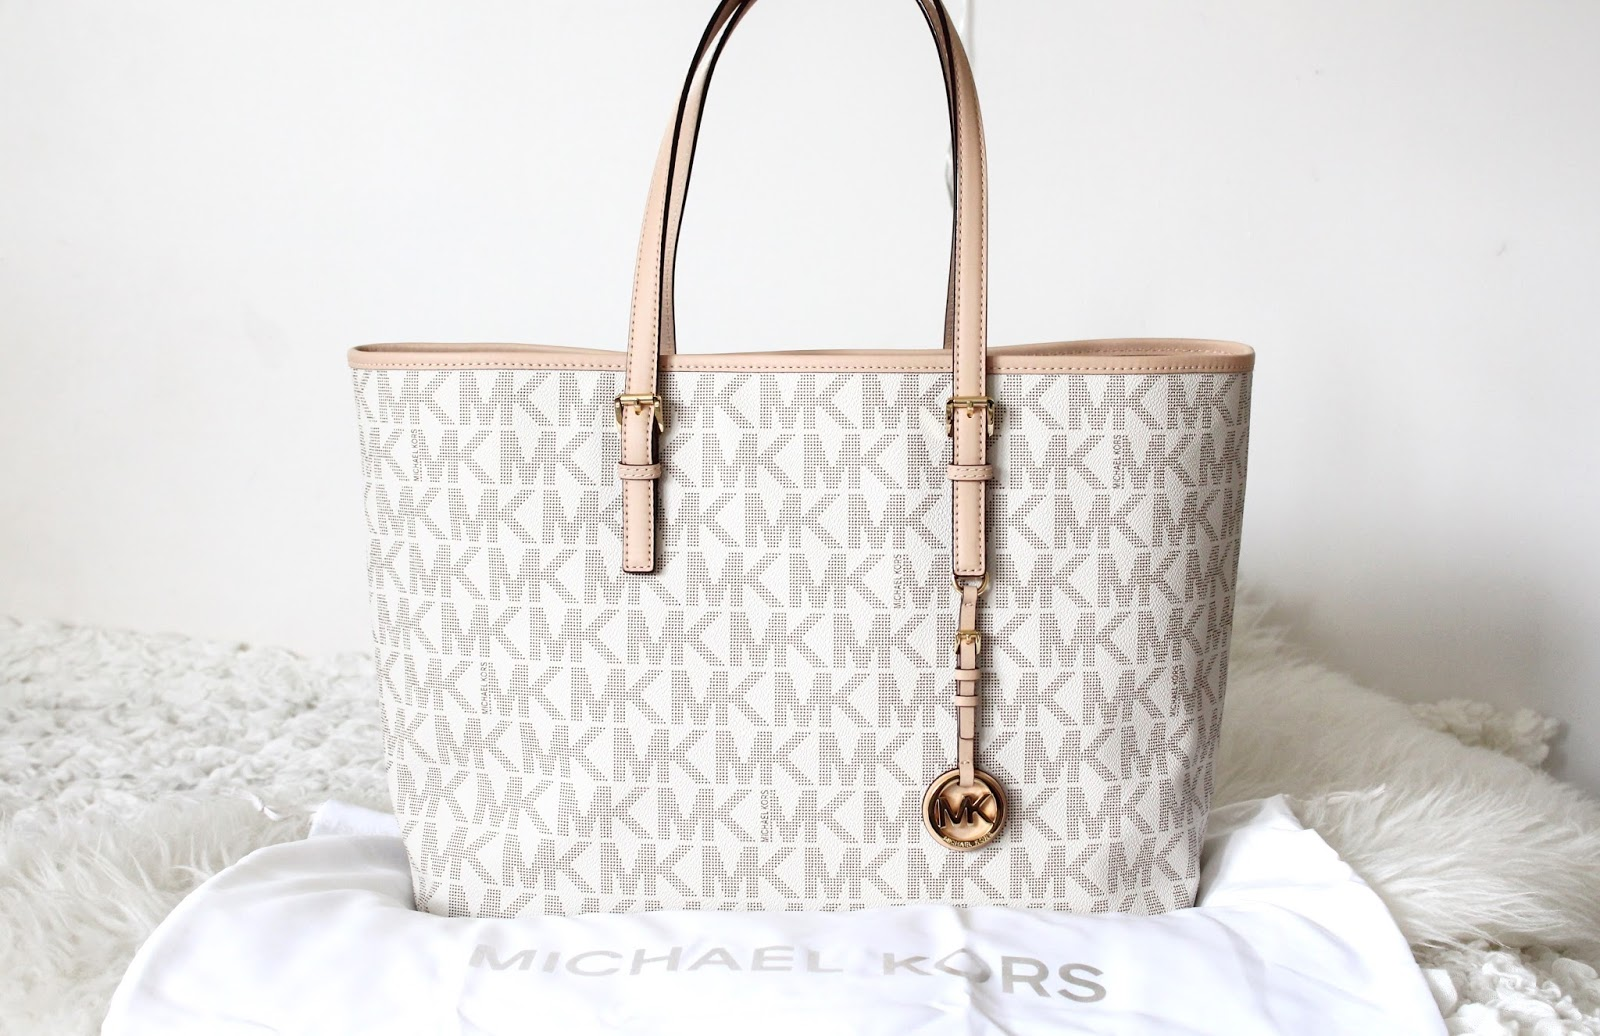 Michael Kors Jet Set Laukku Kokemuksia : Emmi s wardrobe michael kors jet set multifunction travel